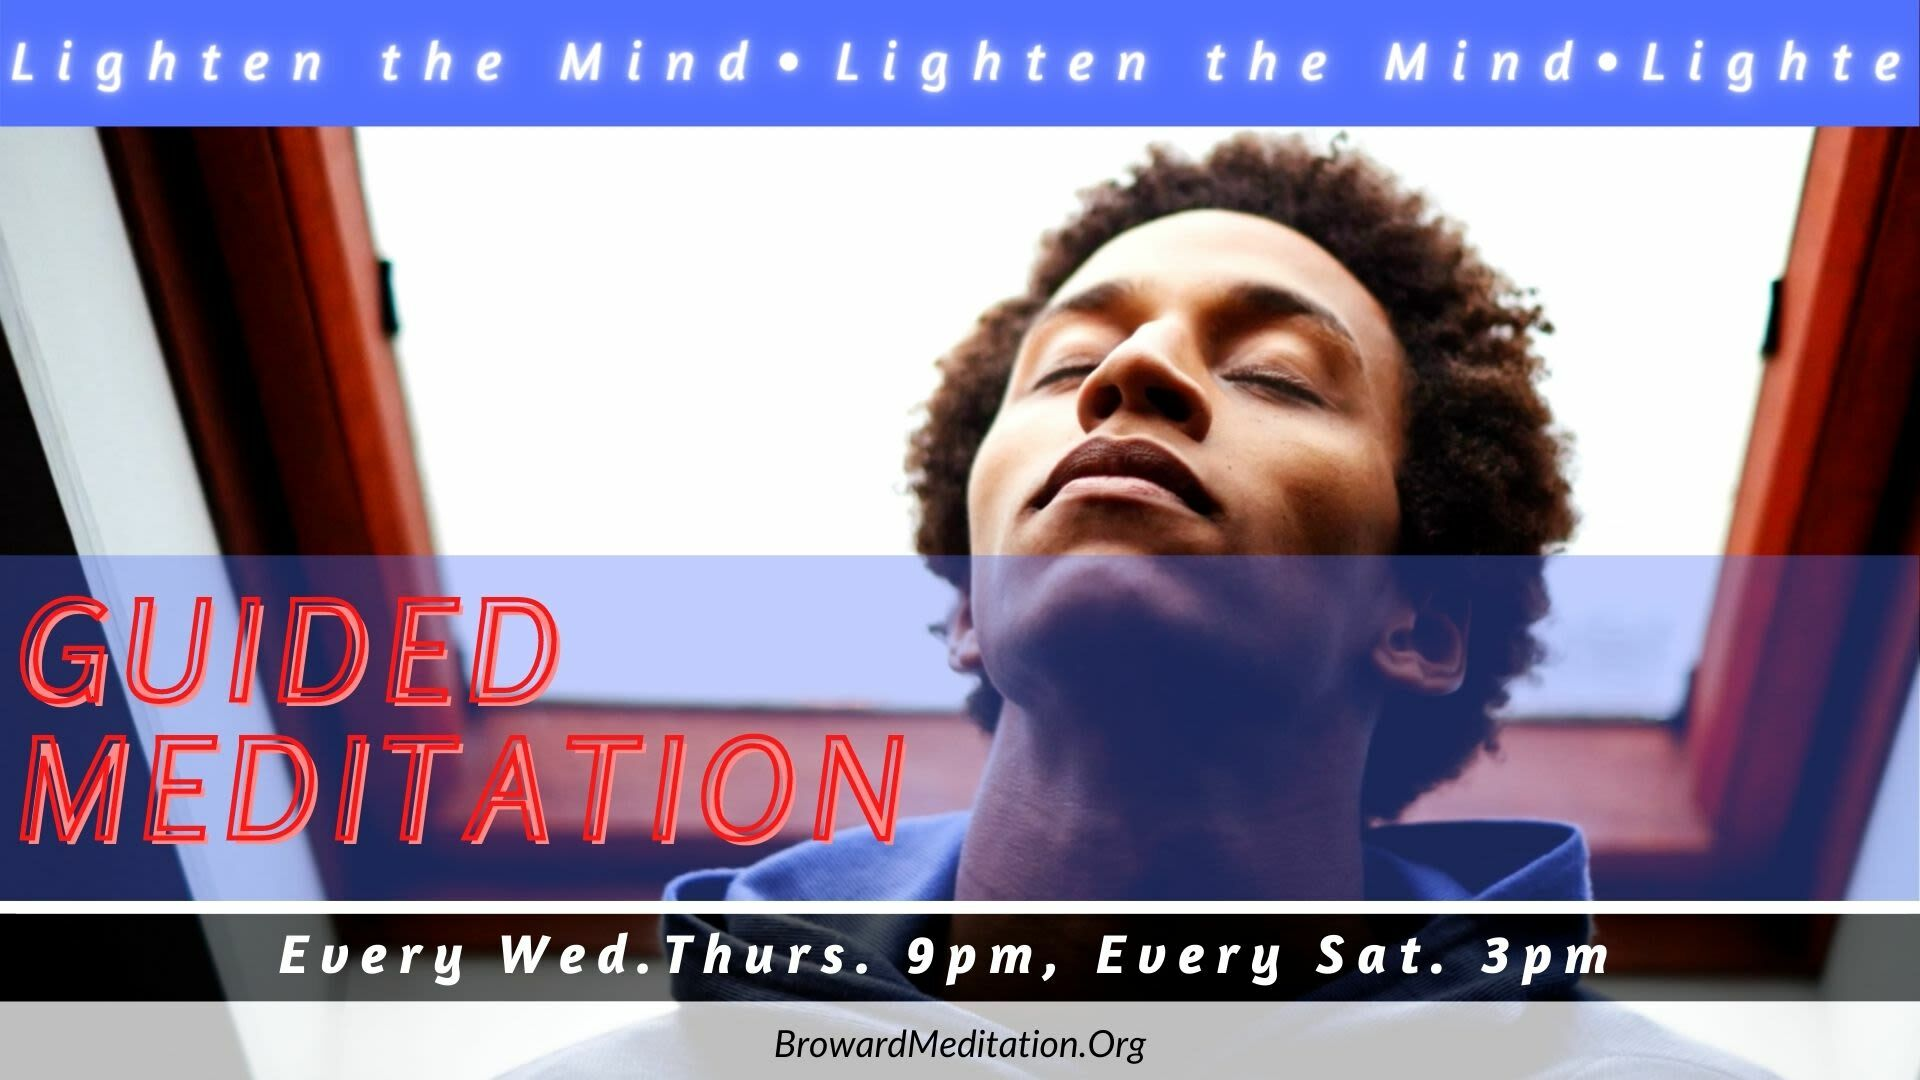 Free Guided Meditation Experience: Lighten the Mind -- Online